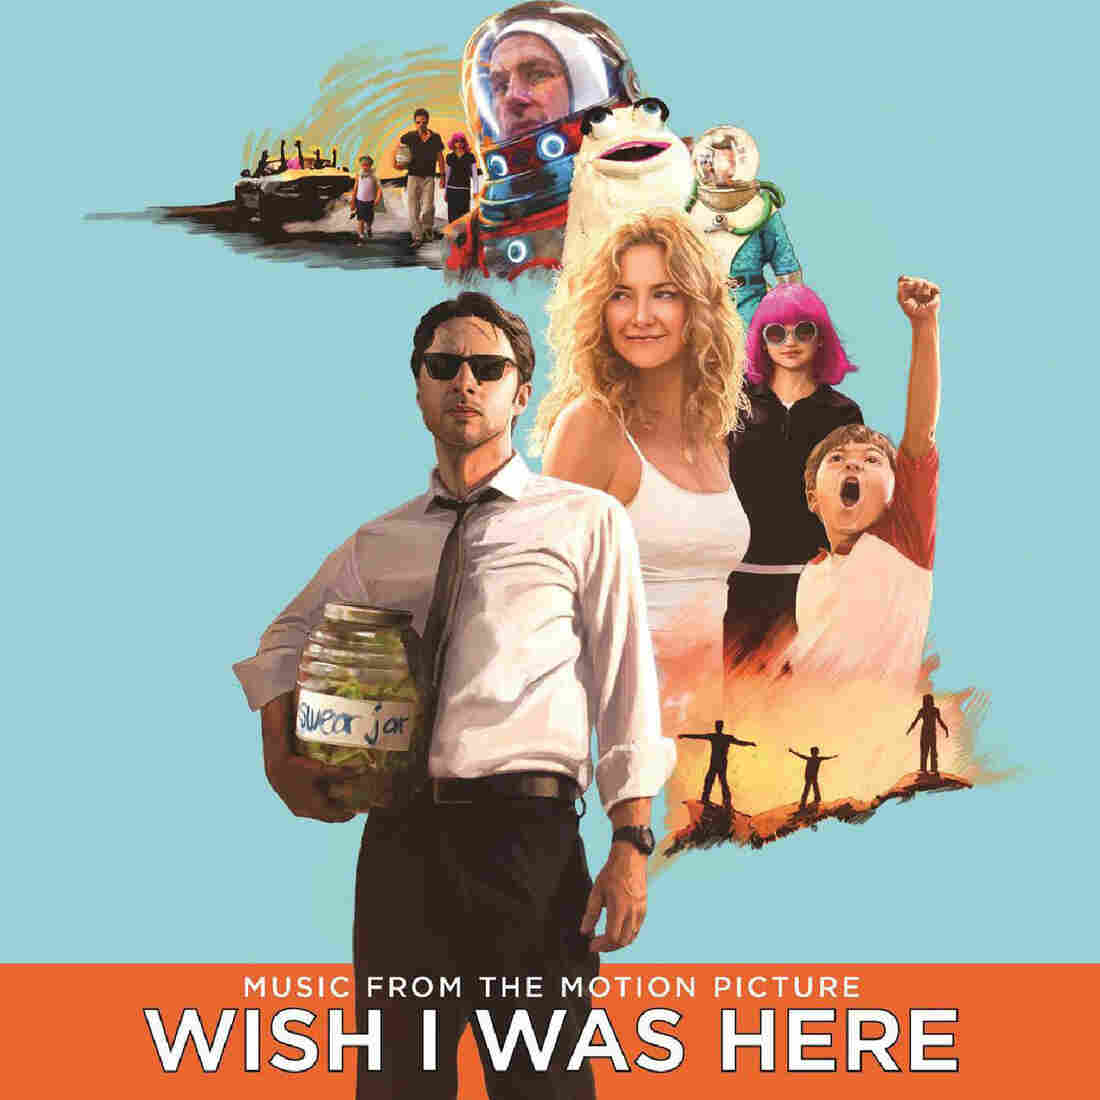 """The soundtrack album art for the film """"Wish I Was Here"""""""